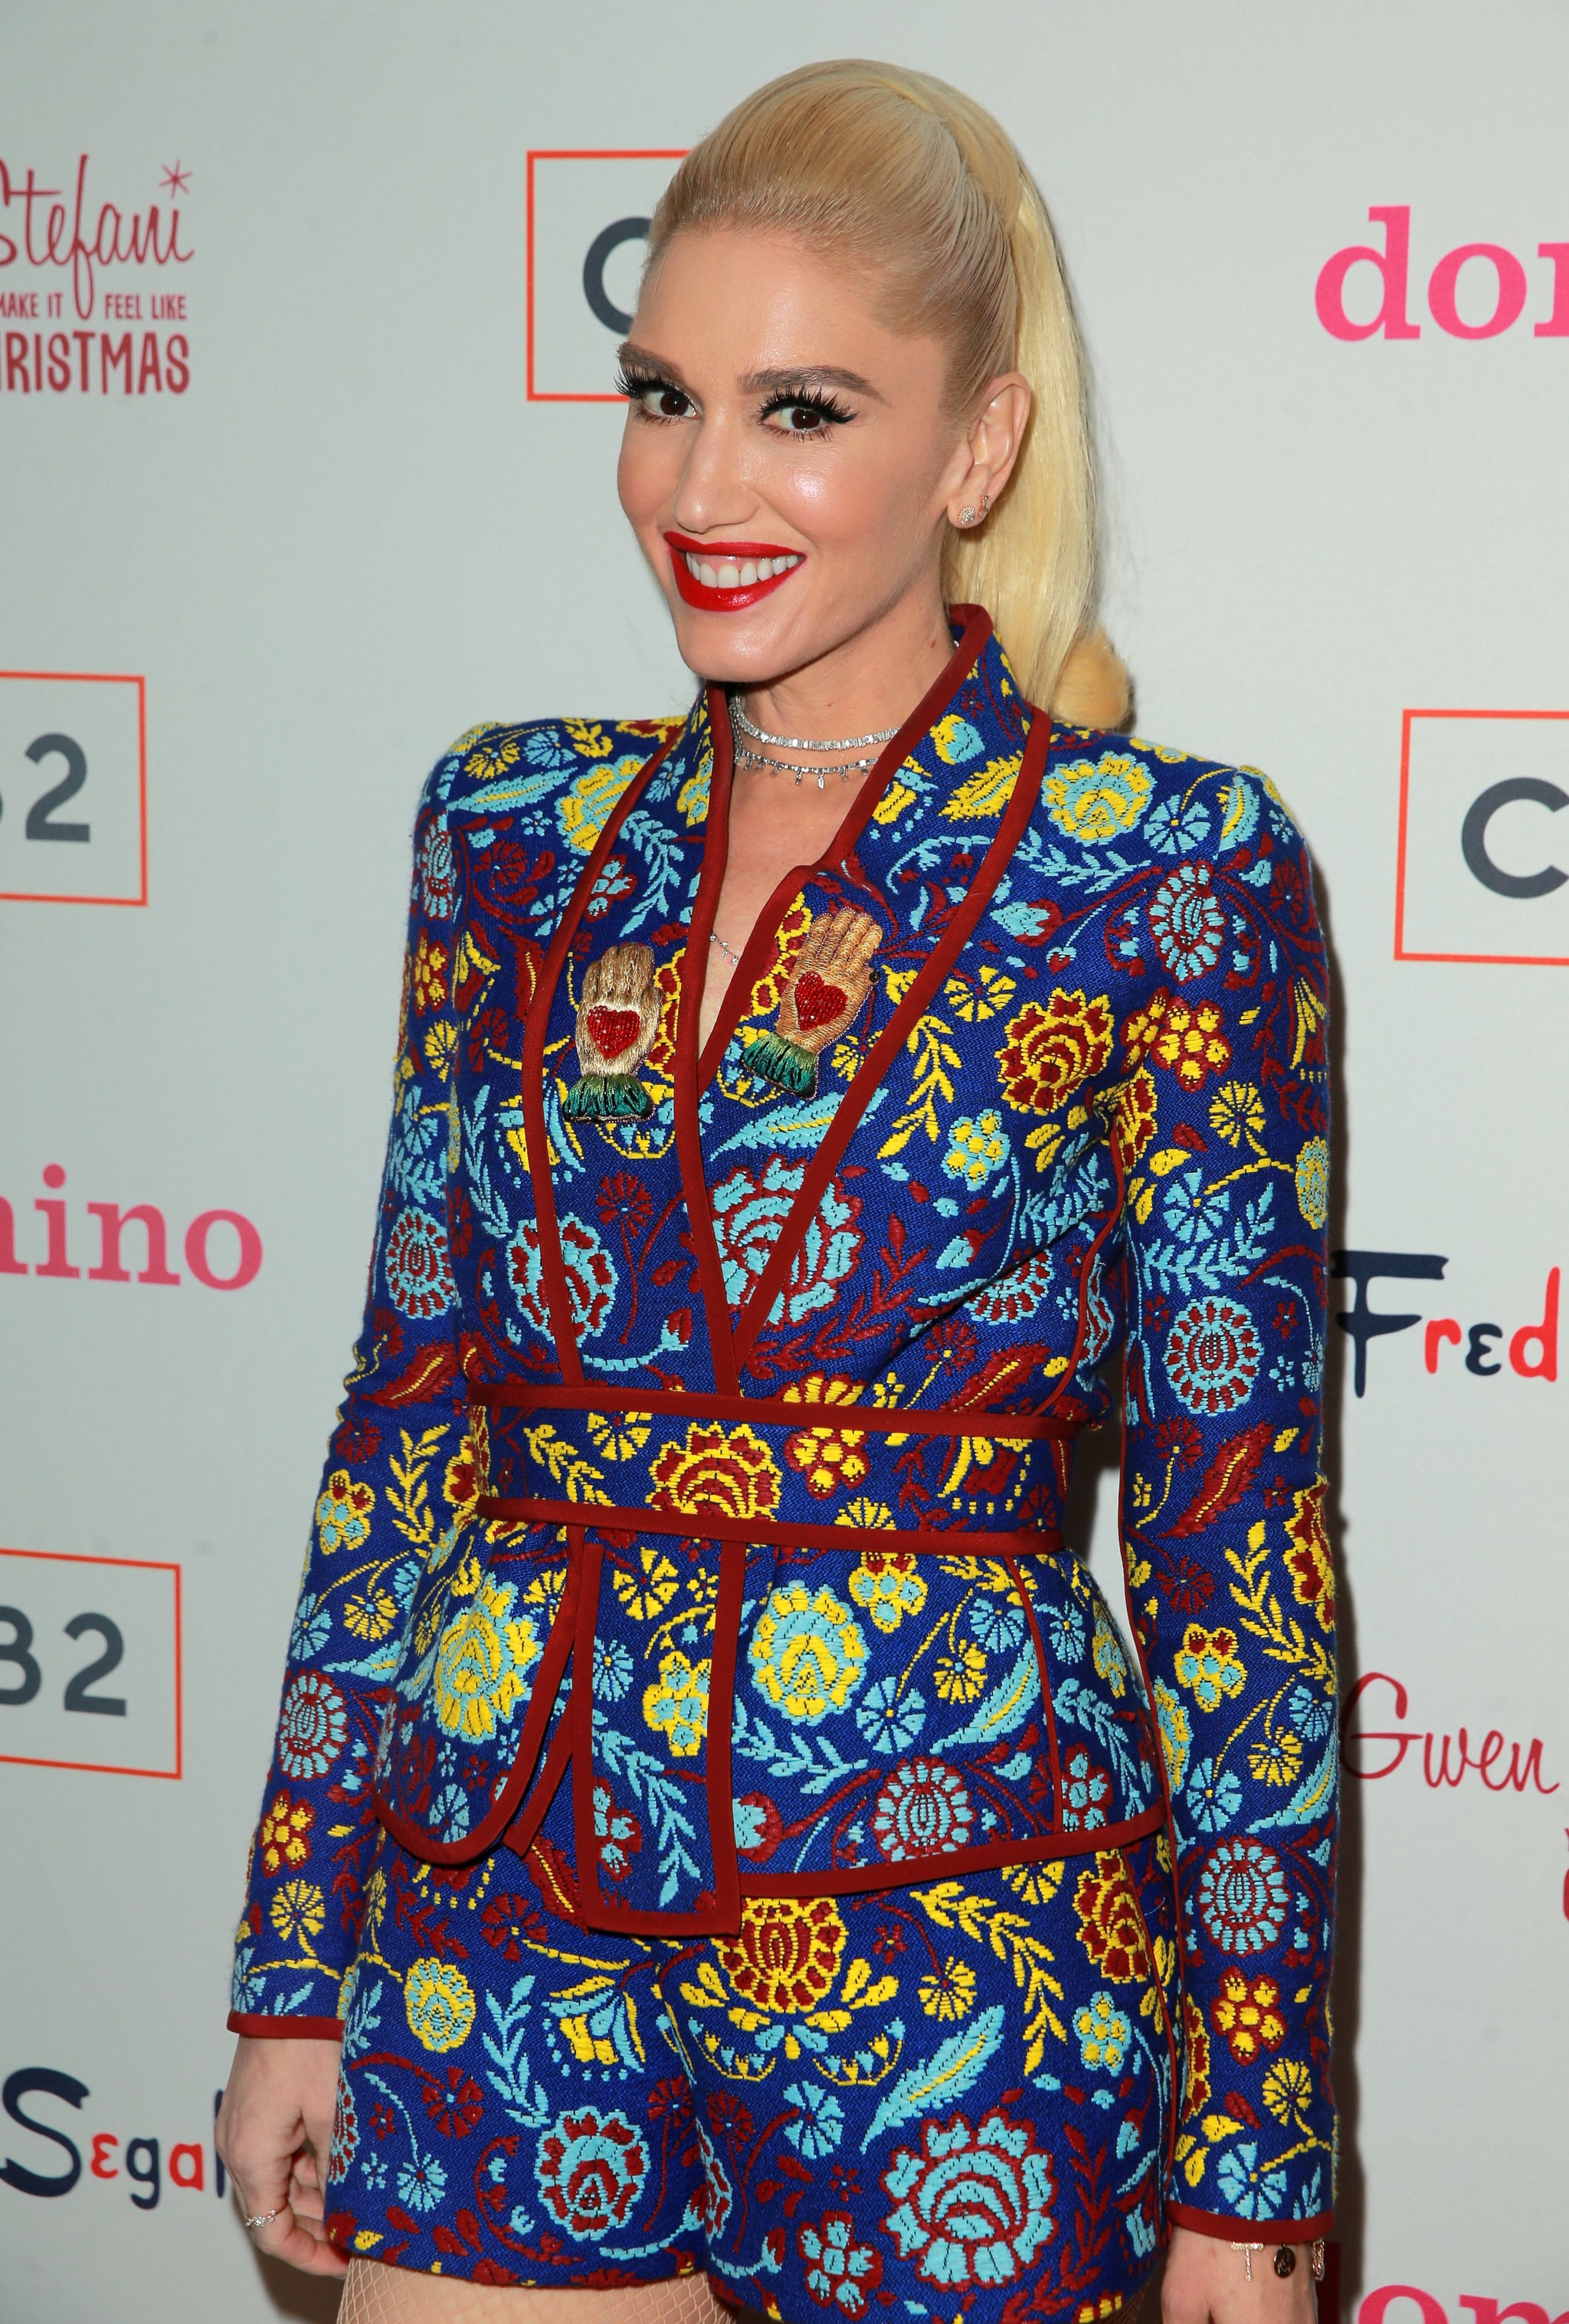 LOS ANGELES, CA - DECEMBER 07:  Gwen Stefani at Domino x Fred Segal and CB2 holiday Pop-Up Shop on December 7, 2017 in Los Angeles, California.  (Photo by Rich Fury/Getty Images)